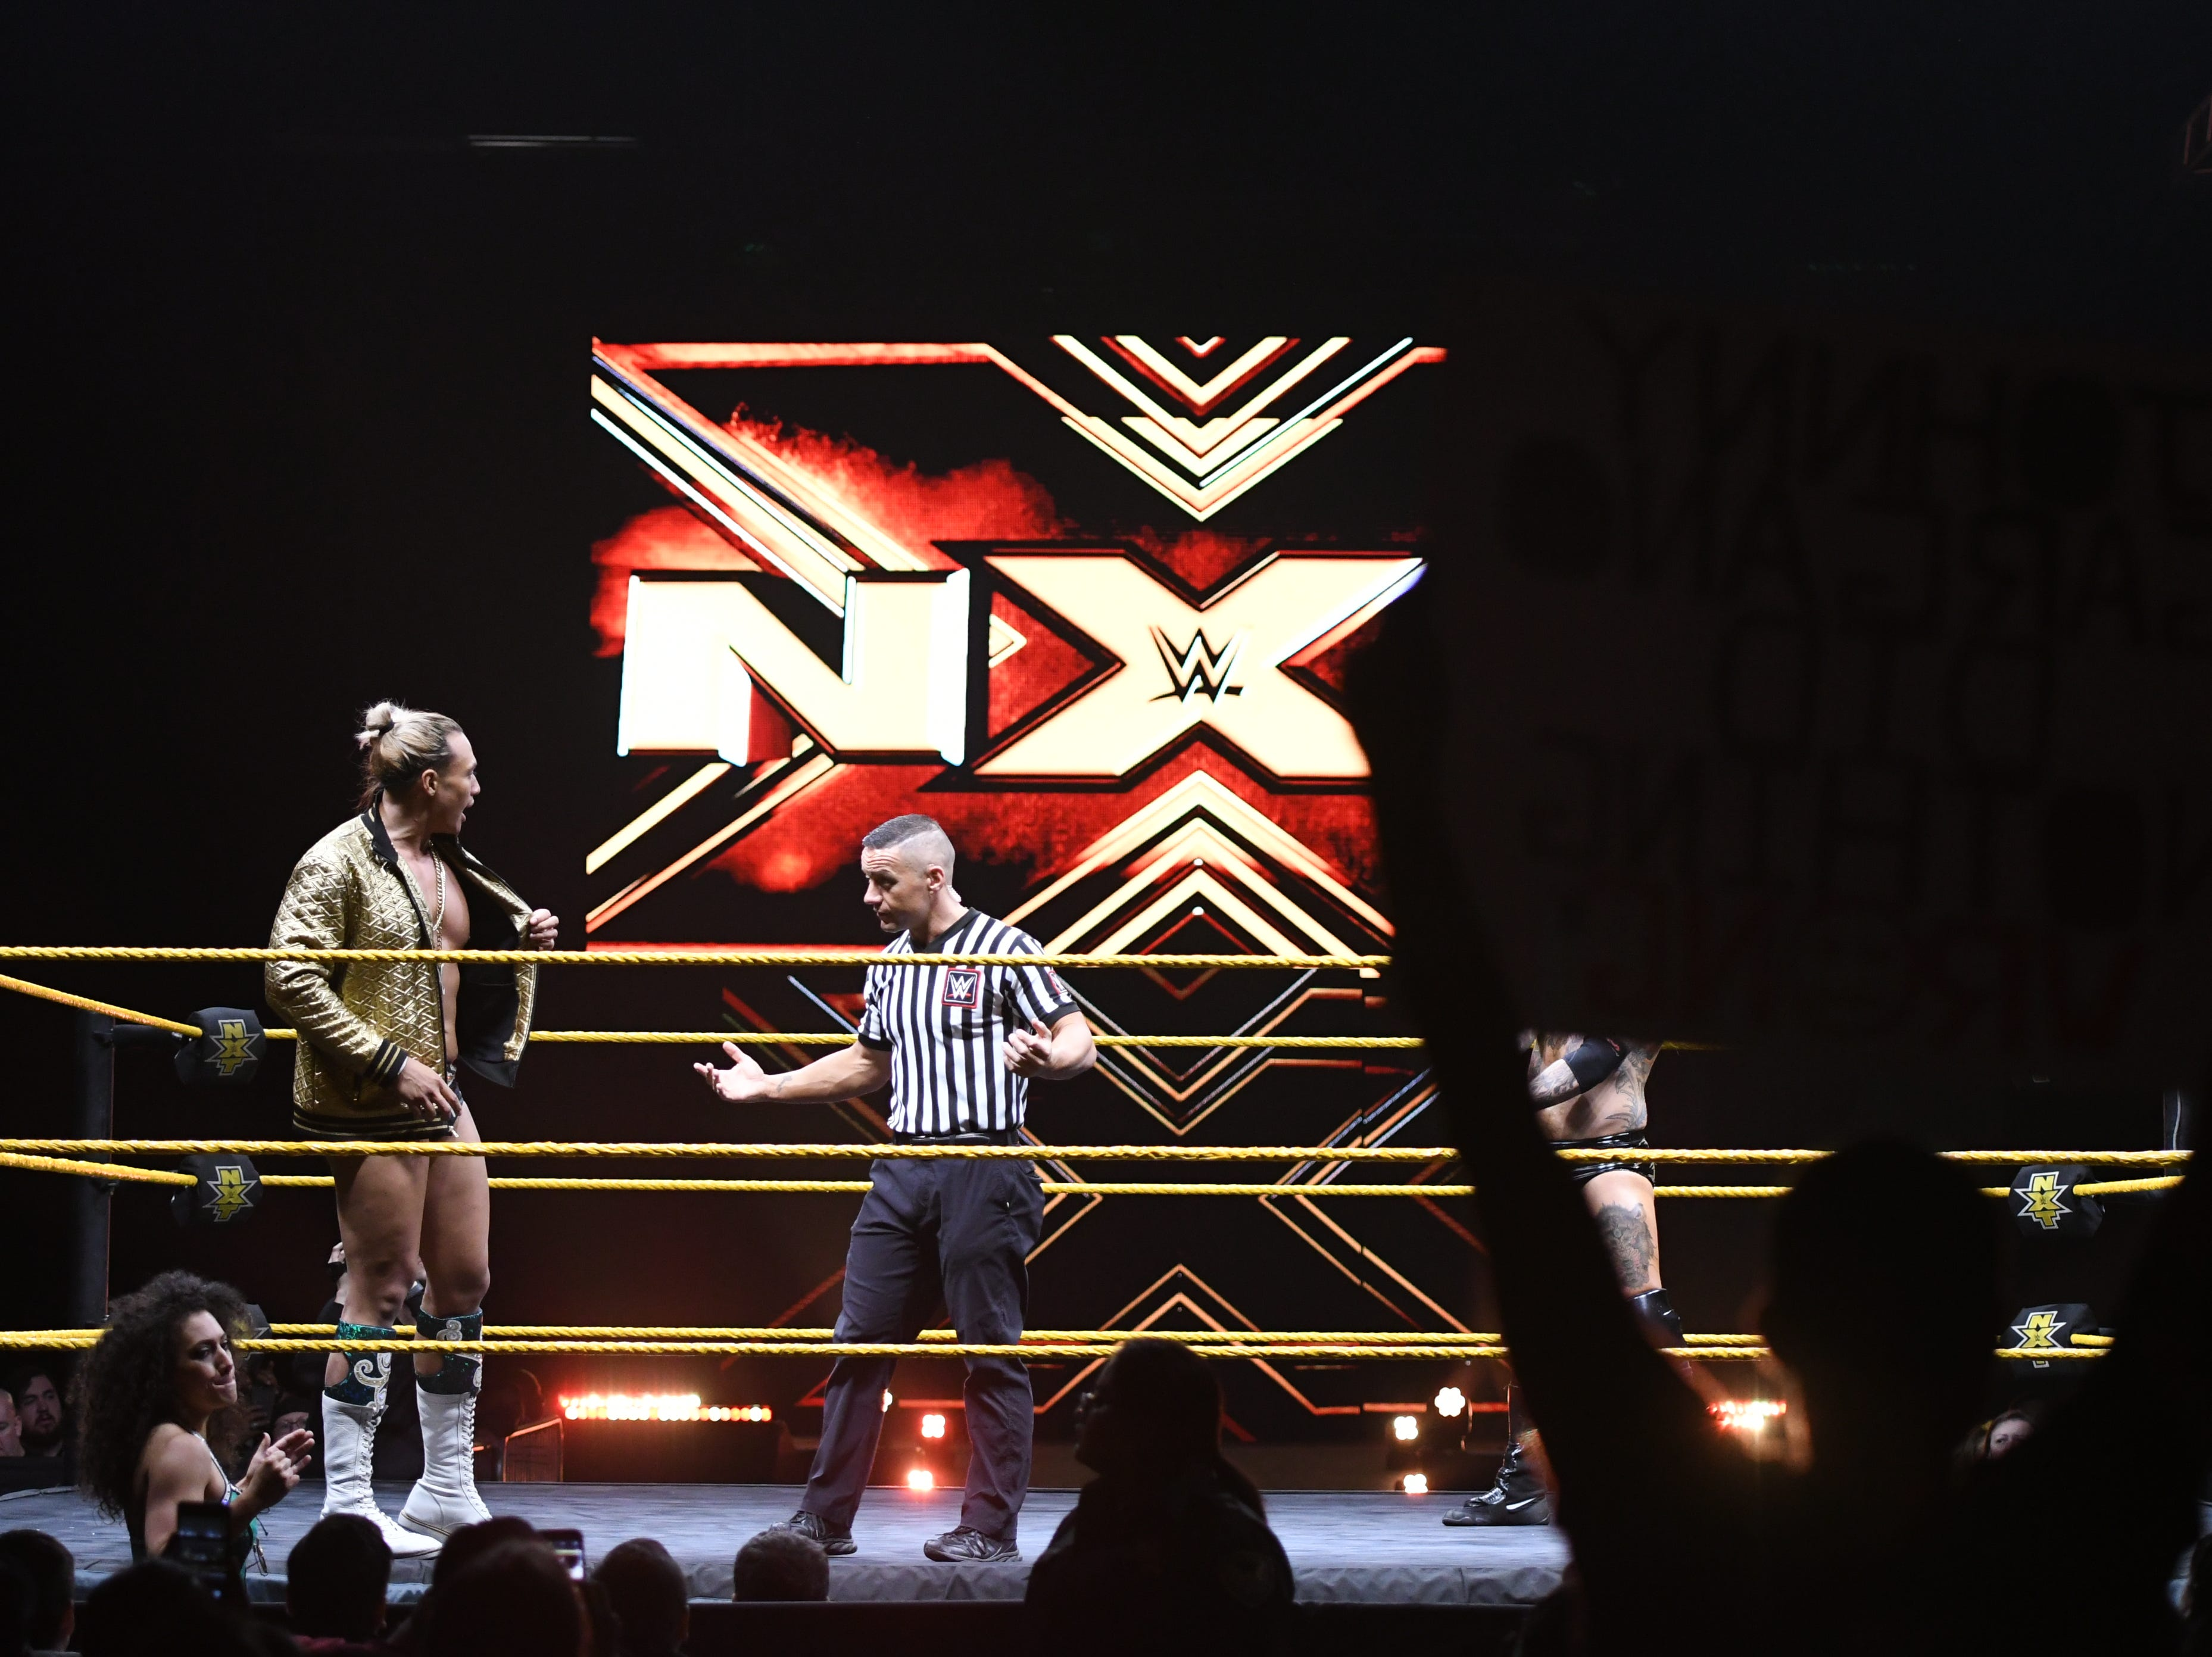 On Friday WWE brought the smackdown to the Visalia Convention Center with its up-and-coming NXT batch of brawlers.